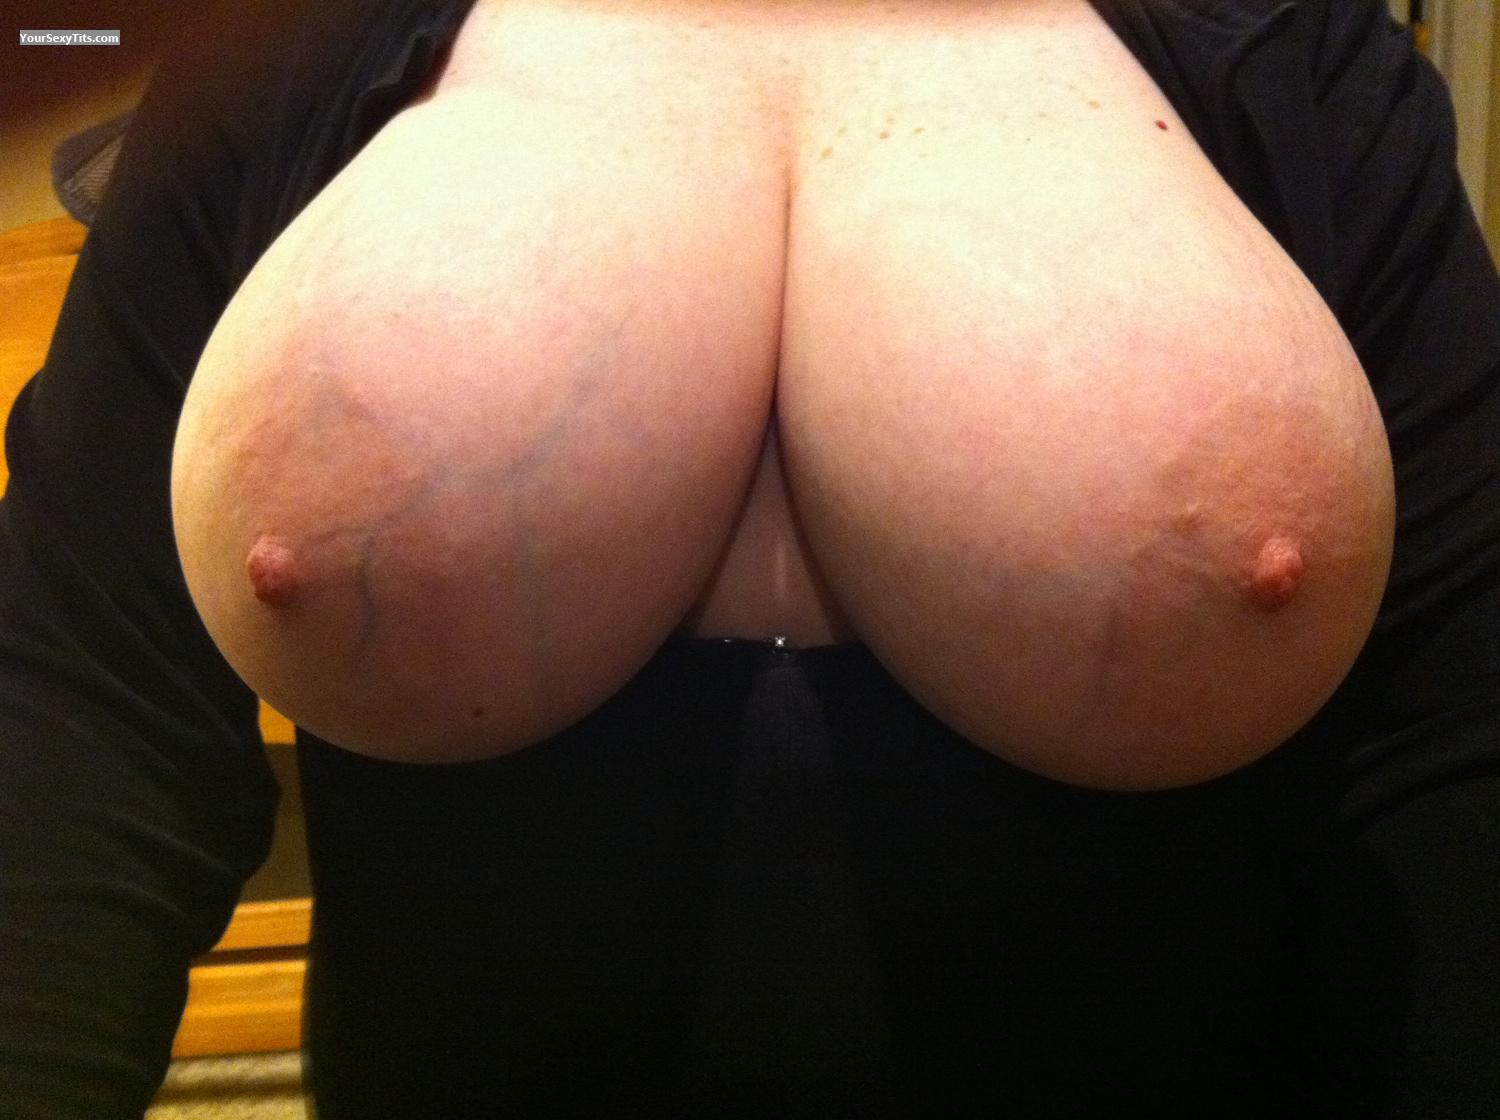 Tit Flash: Very Big Tits By IPhone - JJDD from United States